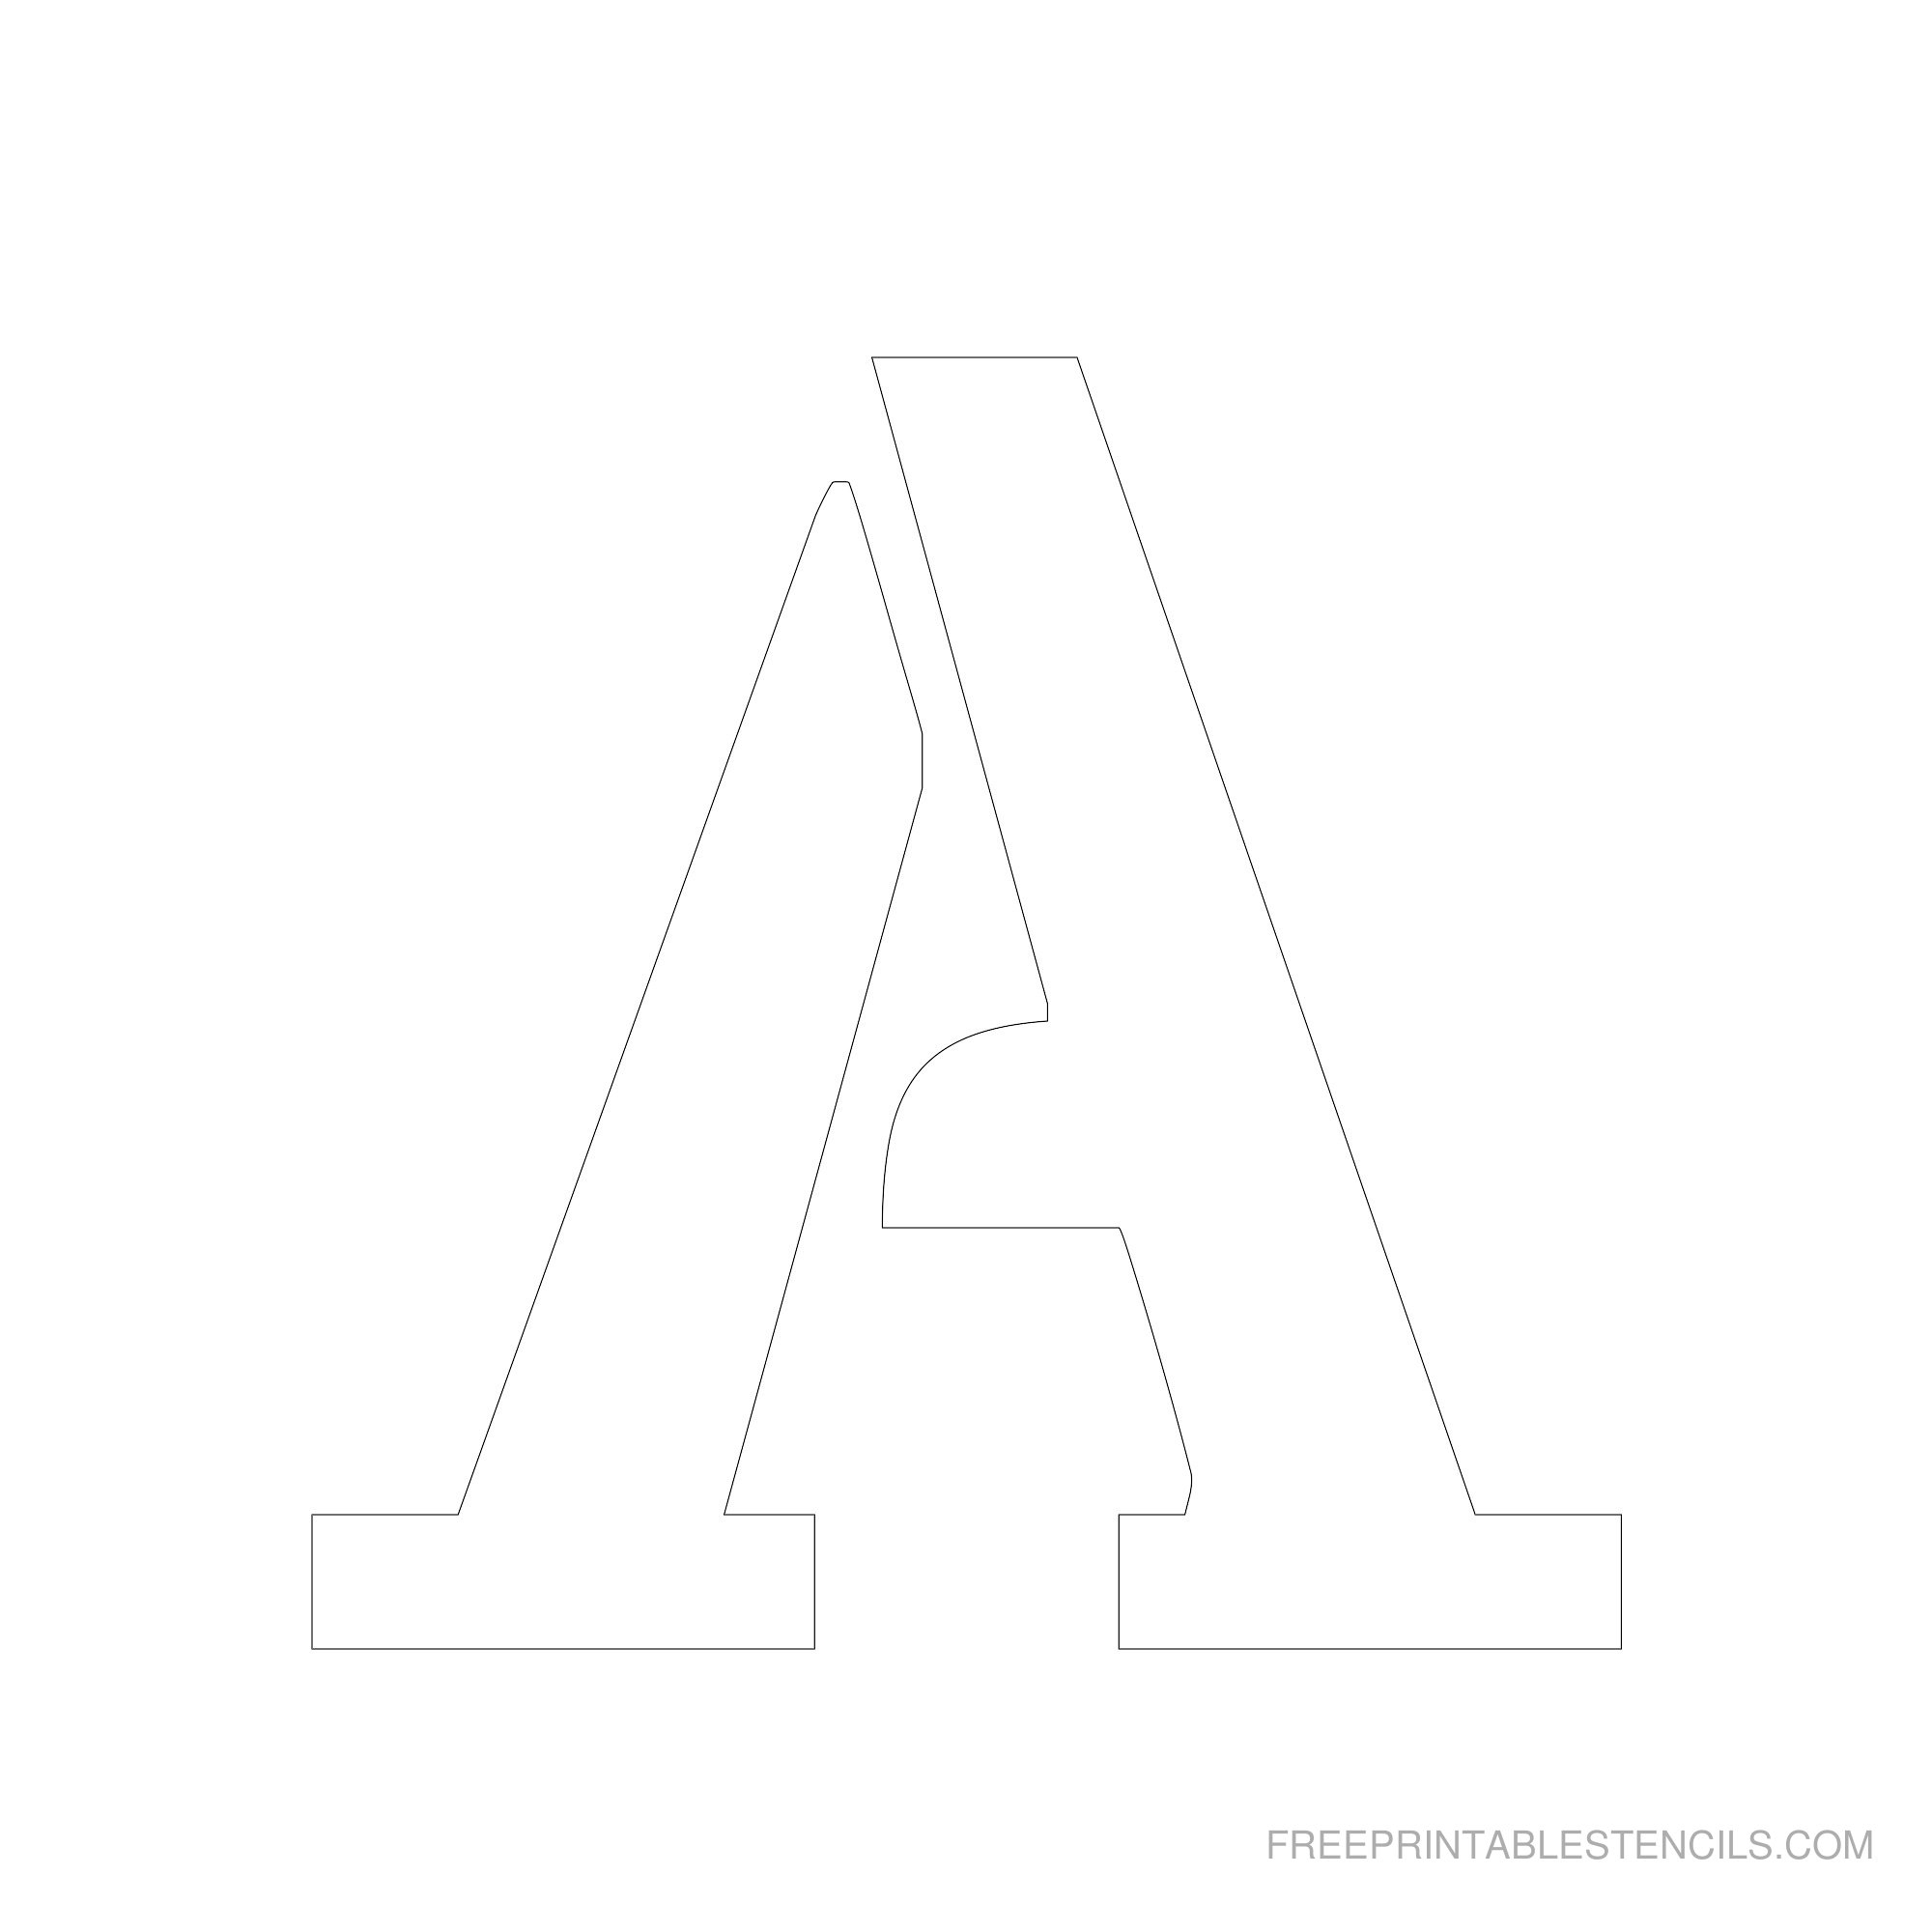 Printable 6 Inch Letter Stencils A-Z   Free Printable Stencils - Free Printable Letter Stencils